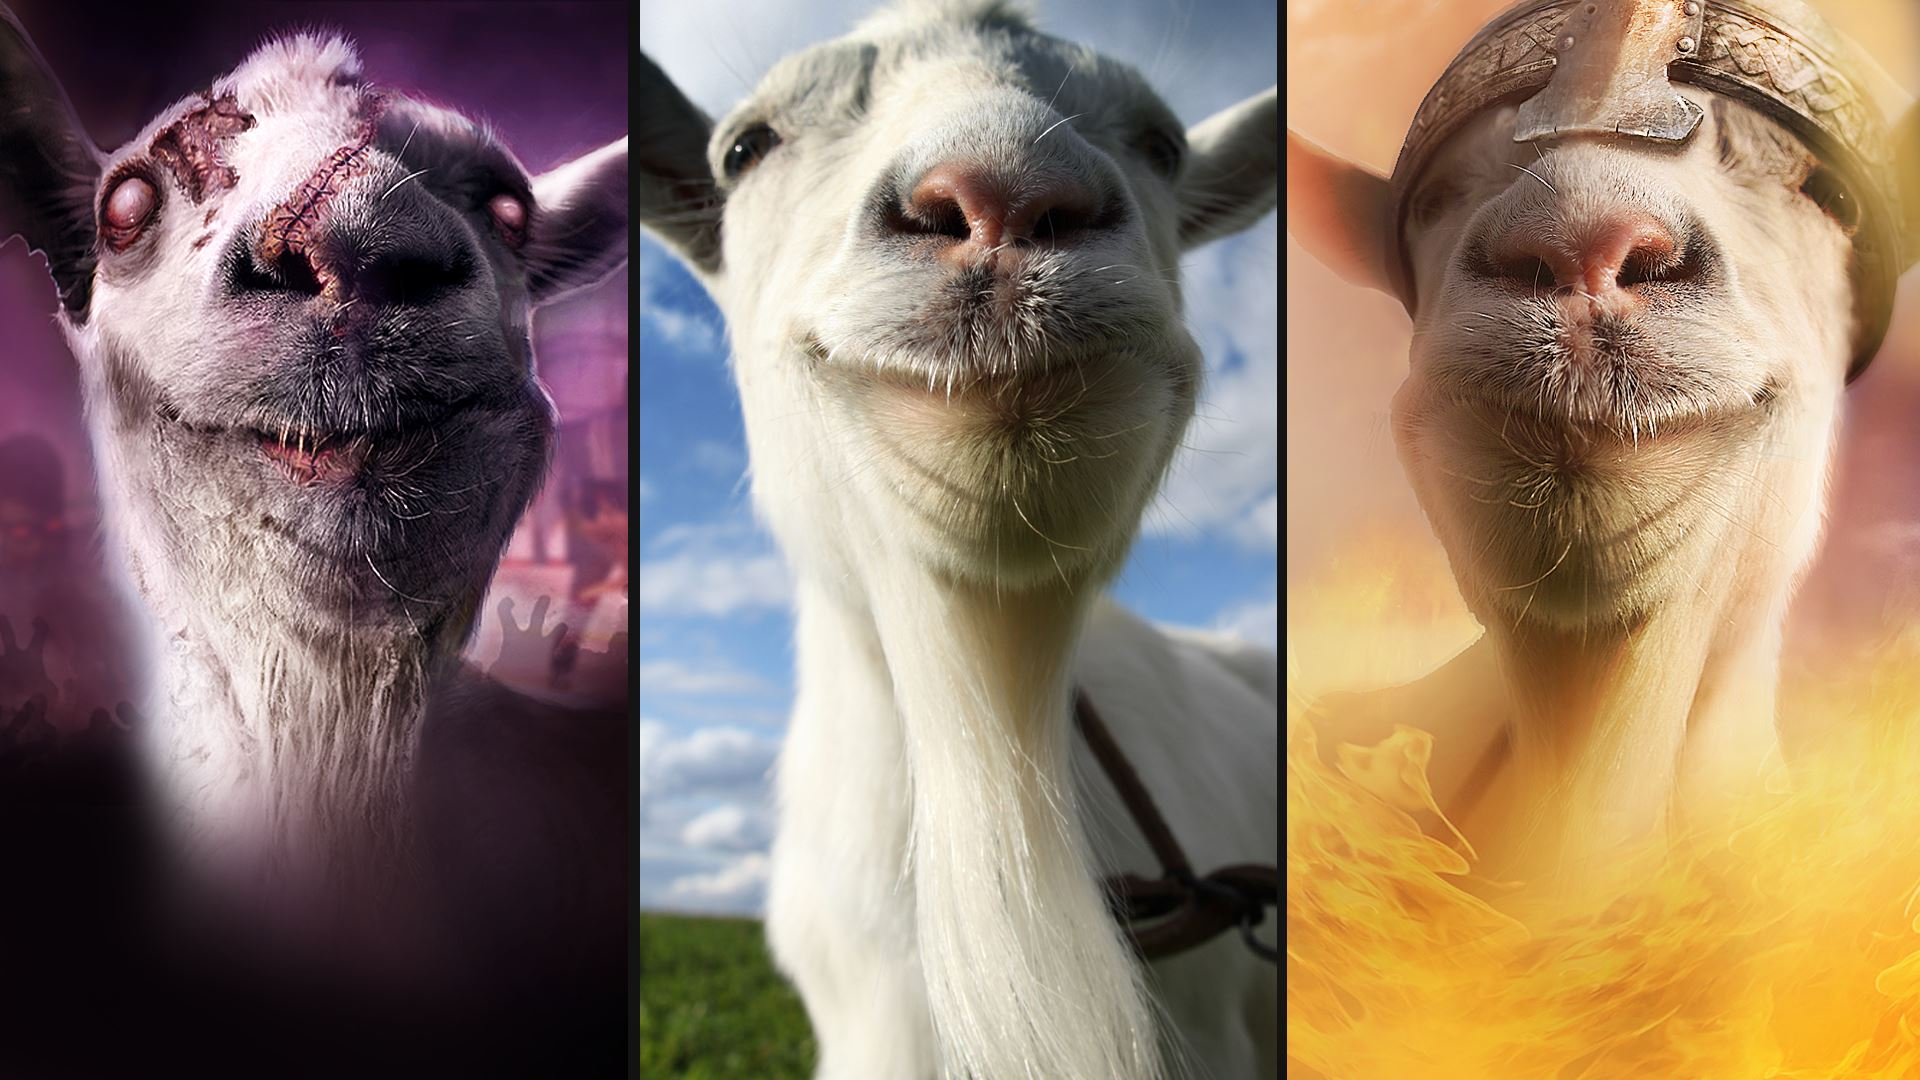 Goat Simulator The Bundle Wallpaper Logo Test Review Nat Games additionally Bio additionally S L besides Killer Instinct Season Screenshot March additionally Screenshot. on xbox games for gold